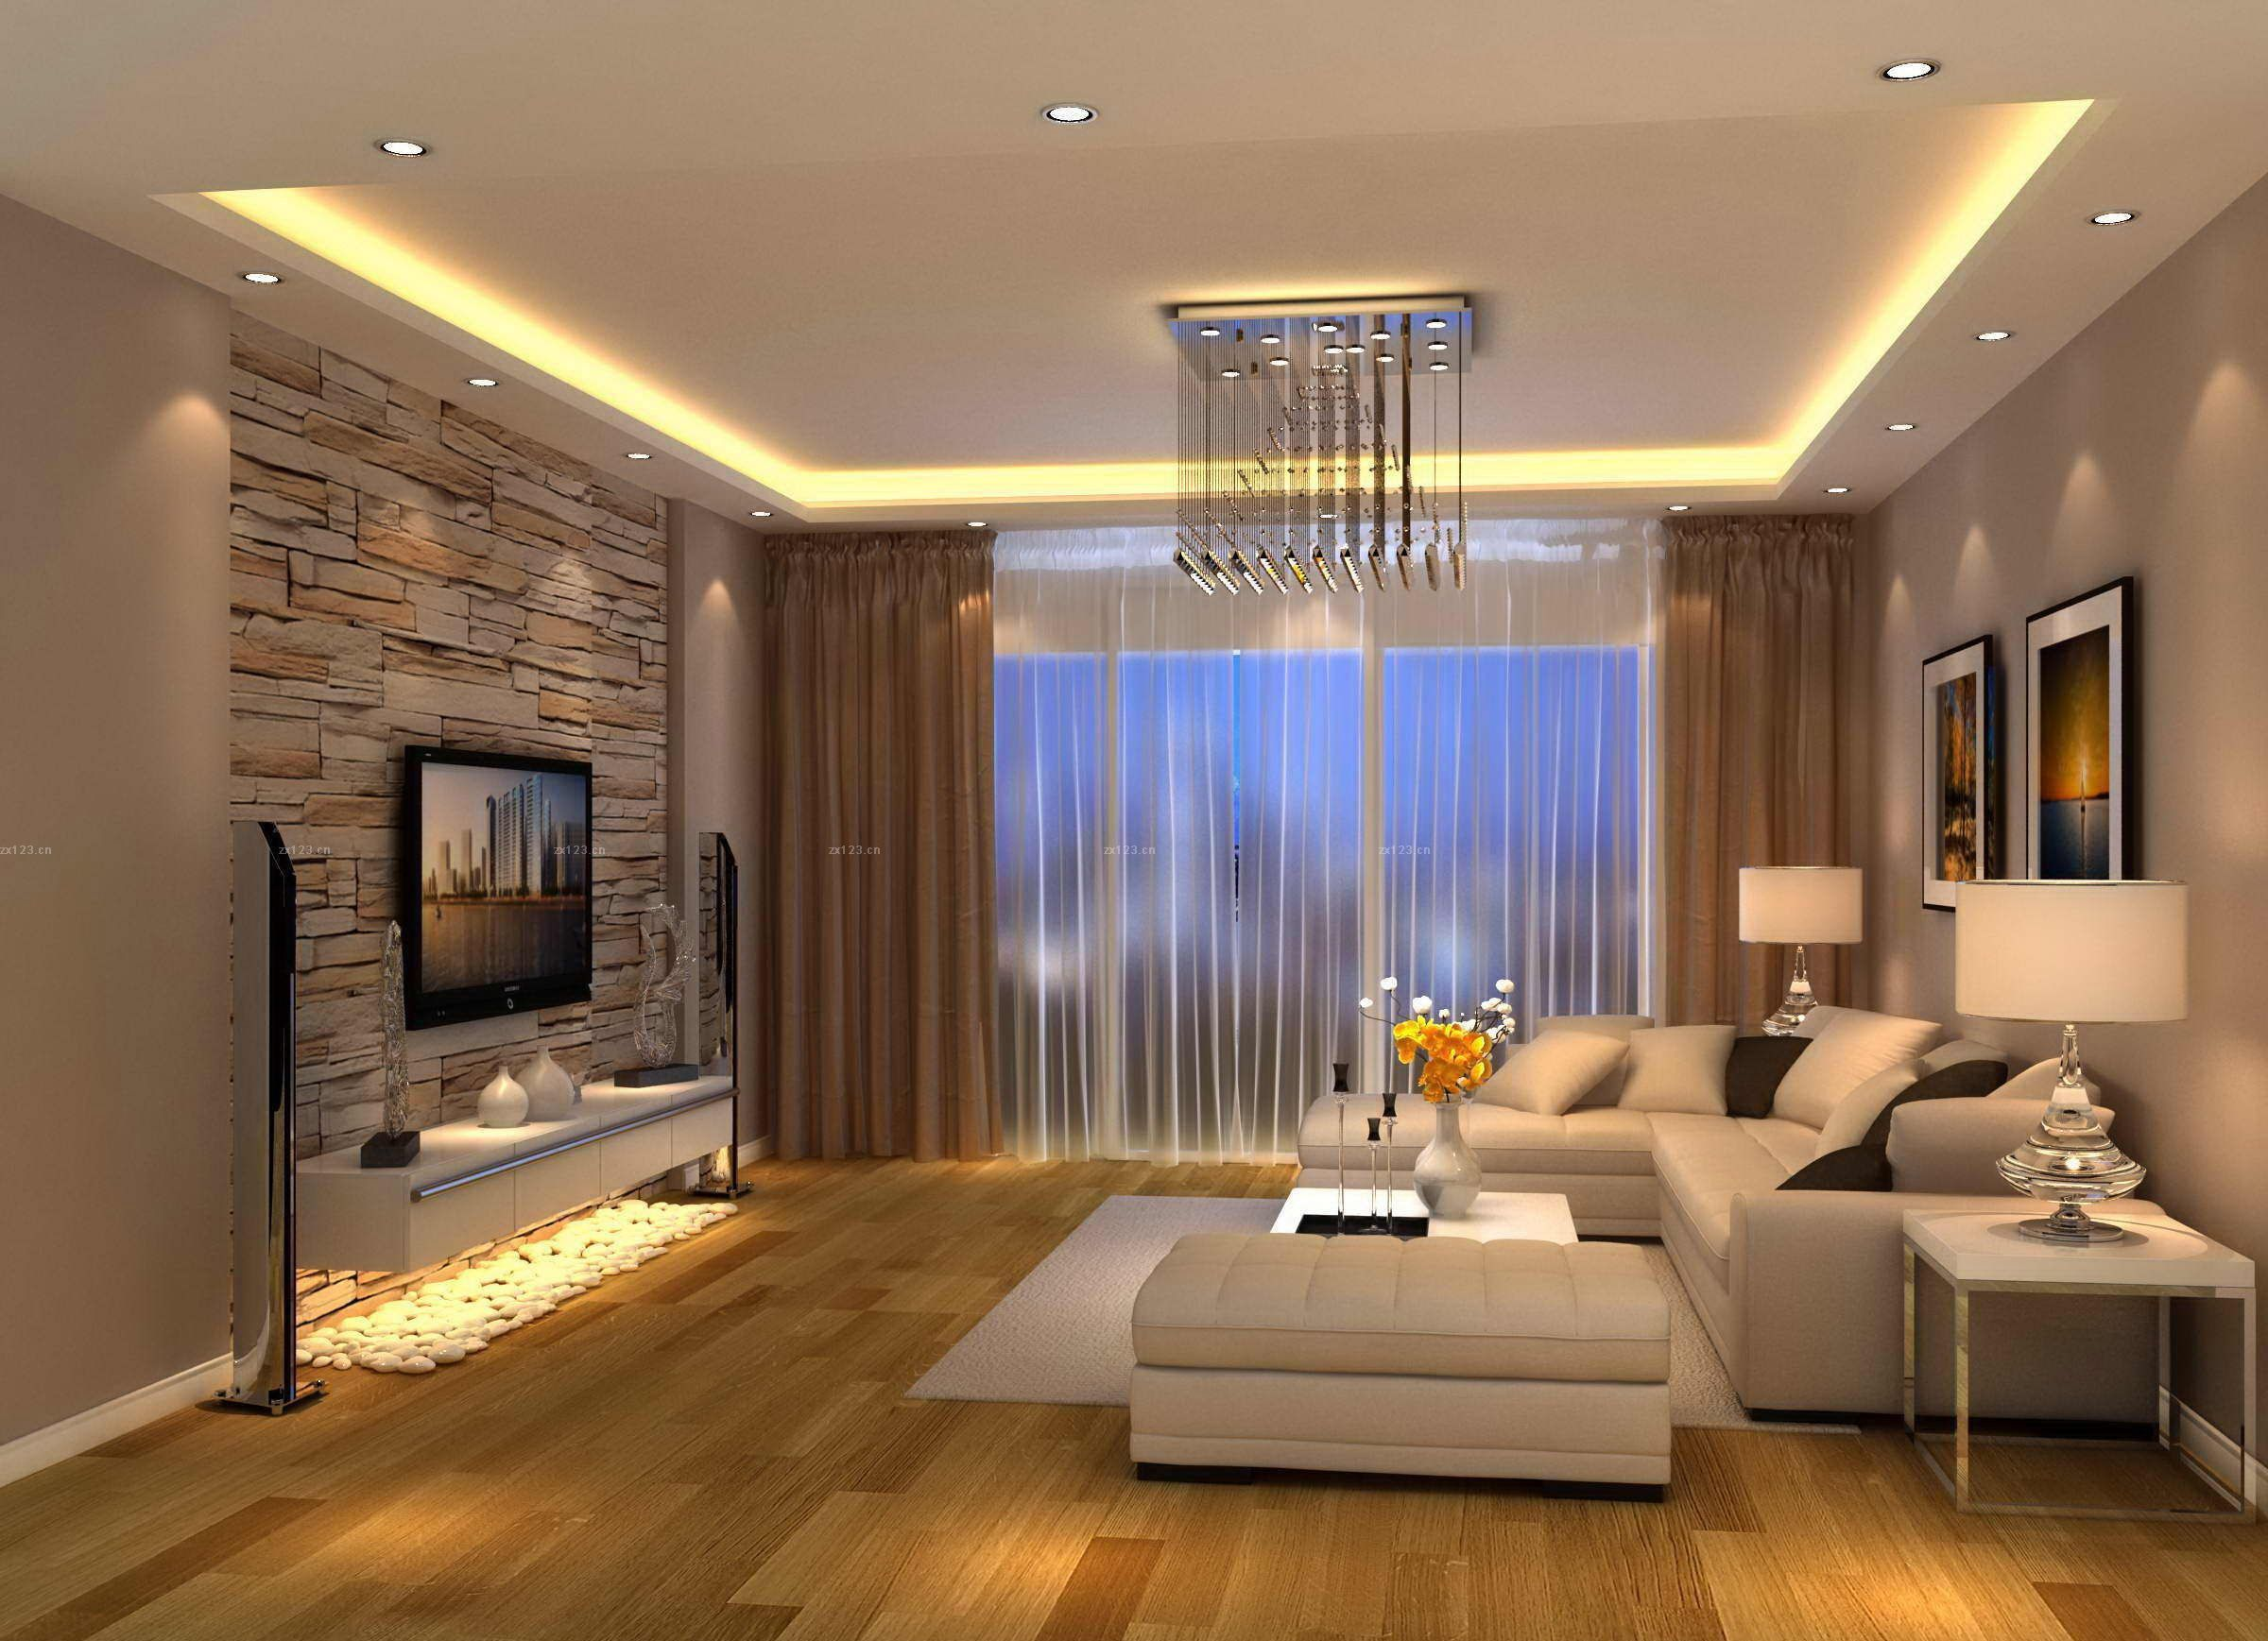 Dressing up your living room with stunning curtain designs